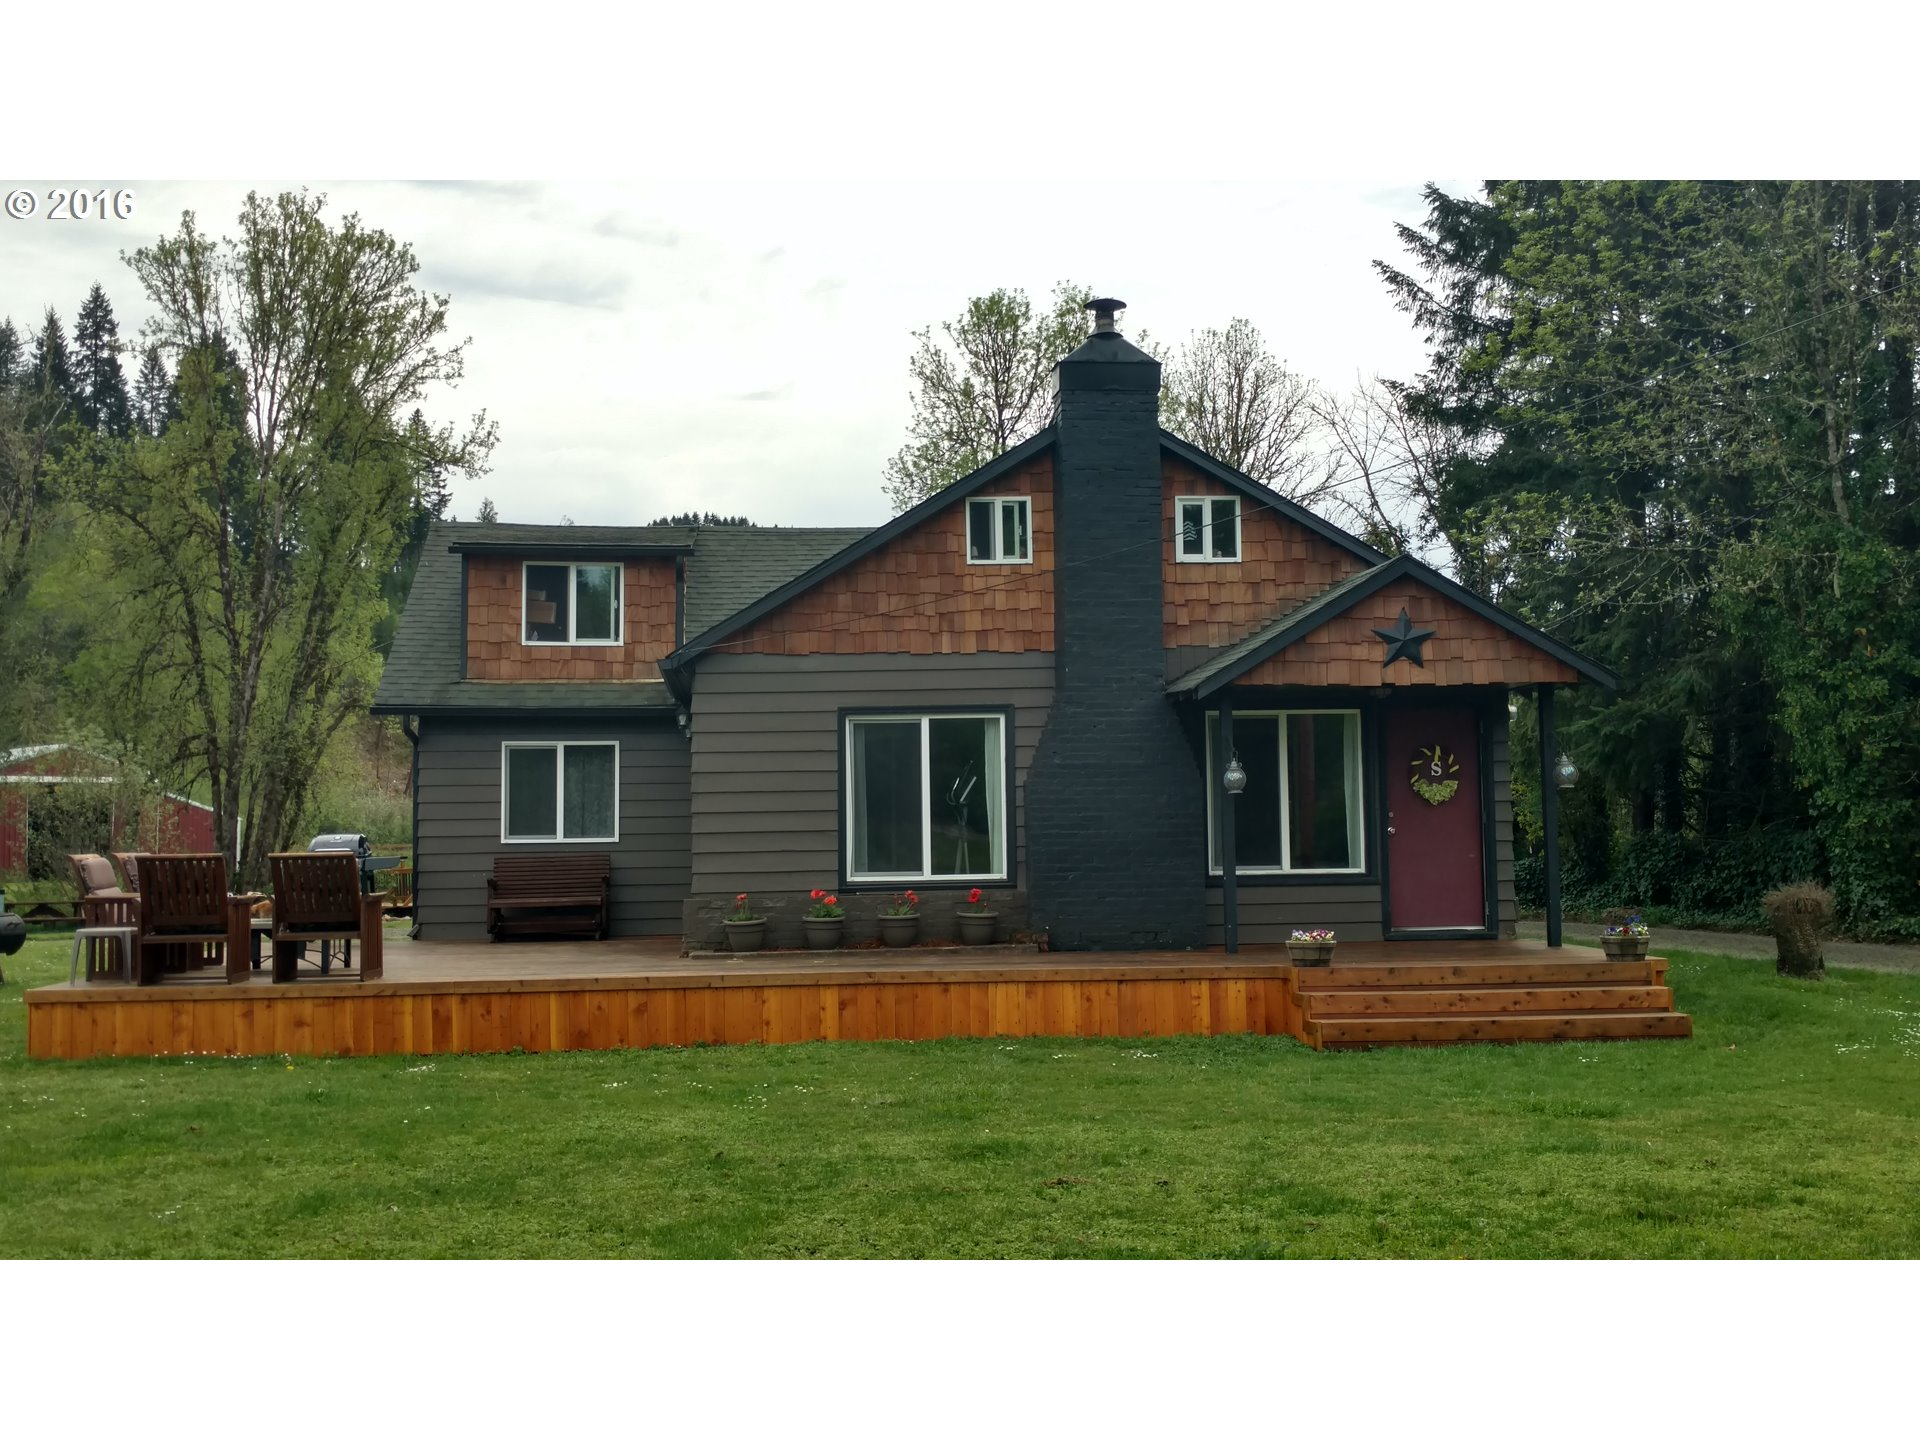 23480 Hall Rd, Cheshire, OR